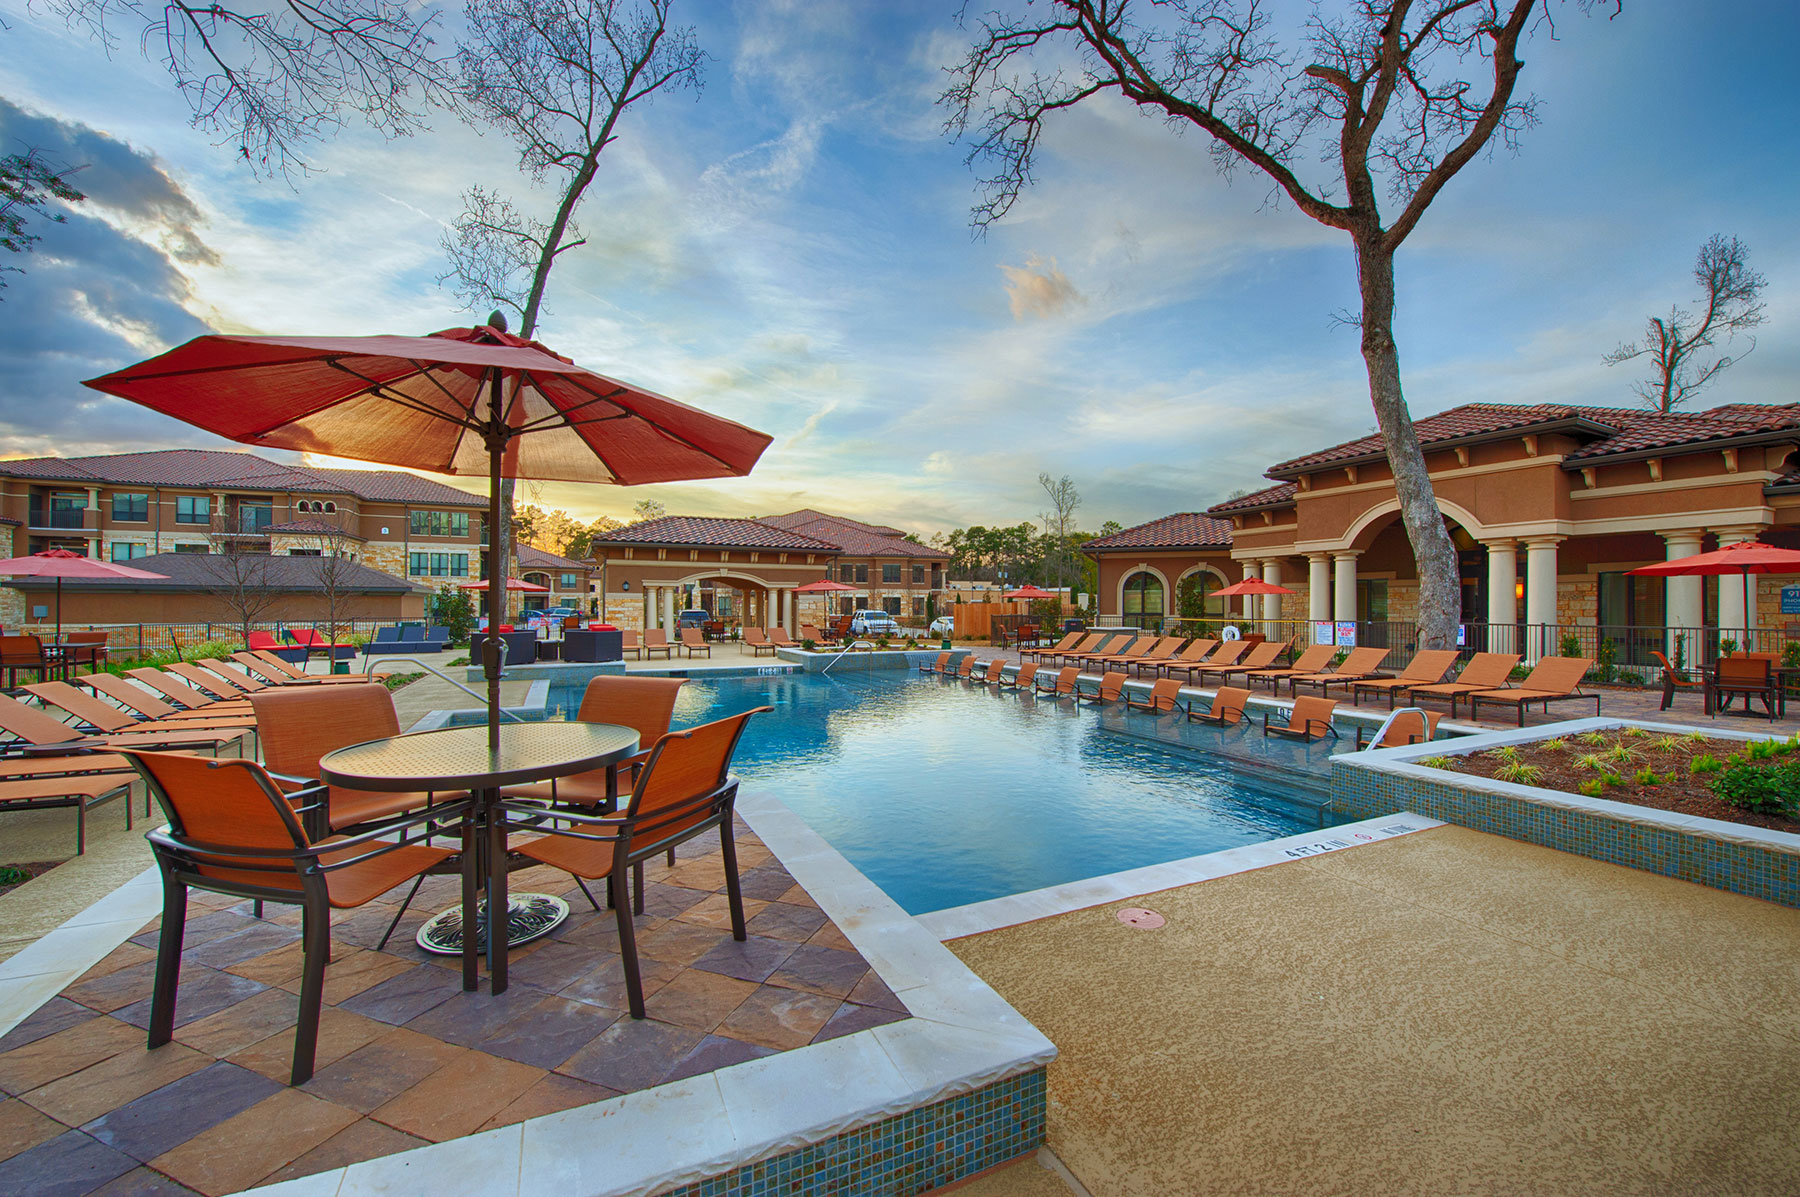 sunset view of rectangular pool with patio seating